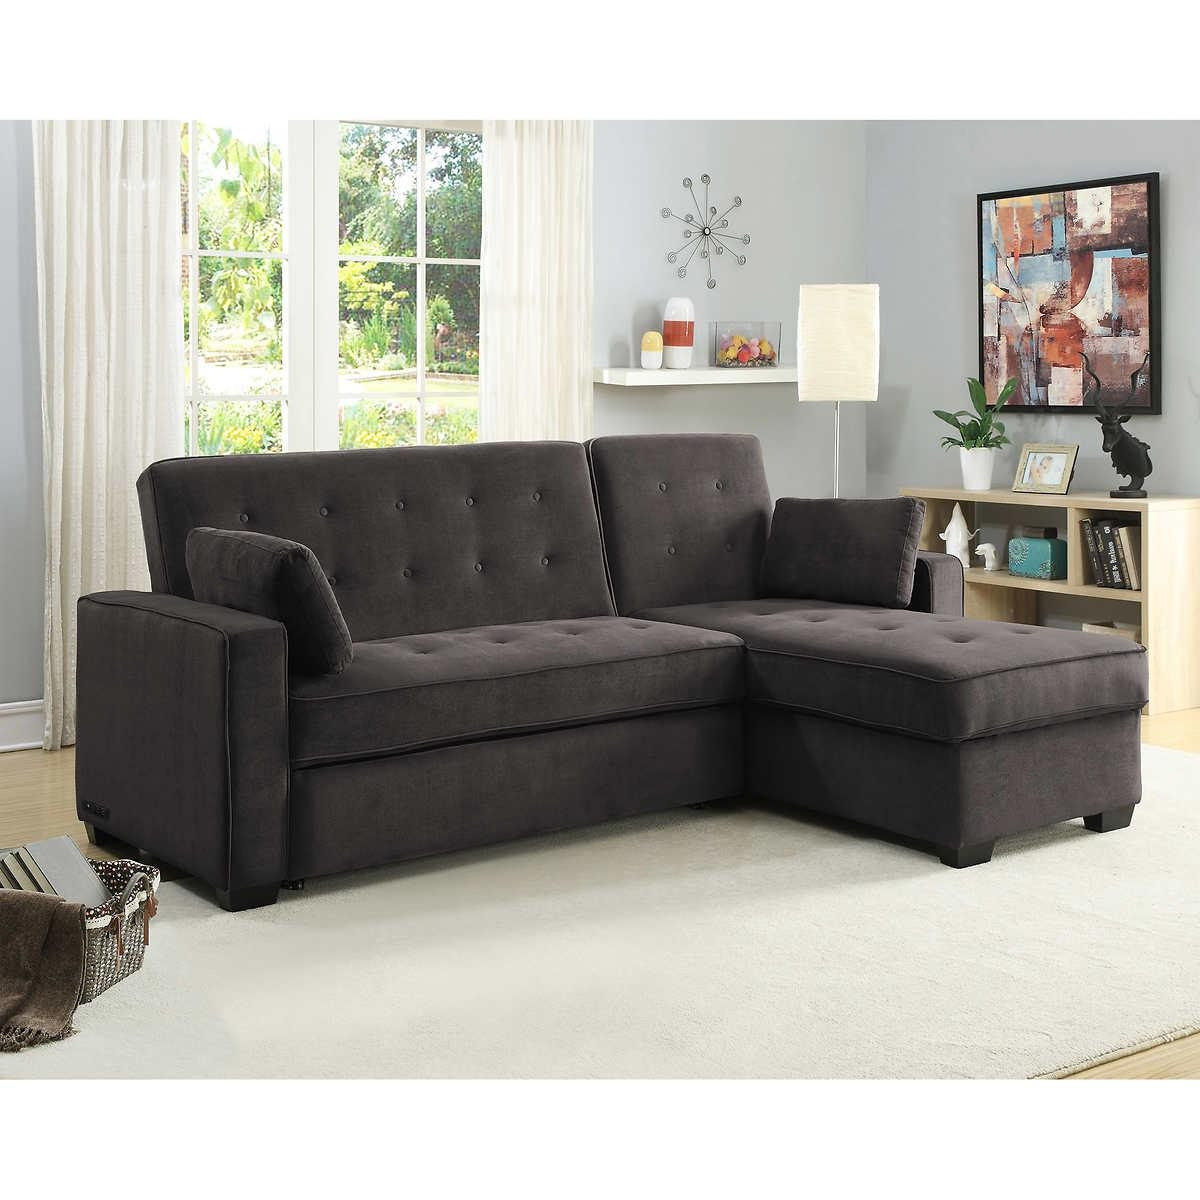 Sofas Center : Berkline Reclining Sofa Costco Pulaski Recliner Within Berkline Sofas (Image 11 of 20)